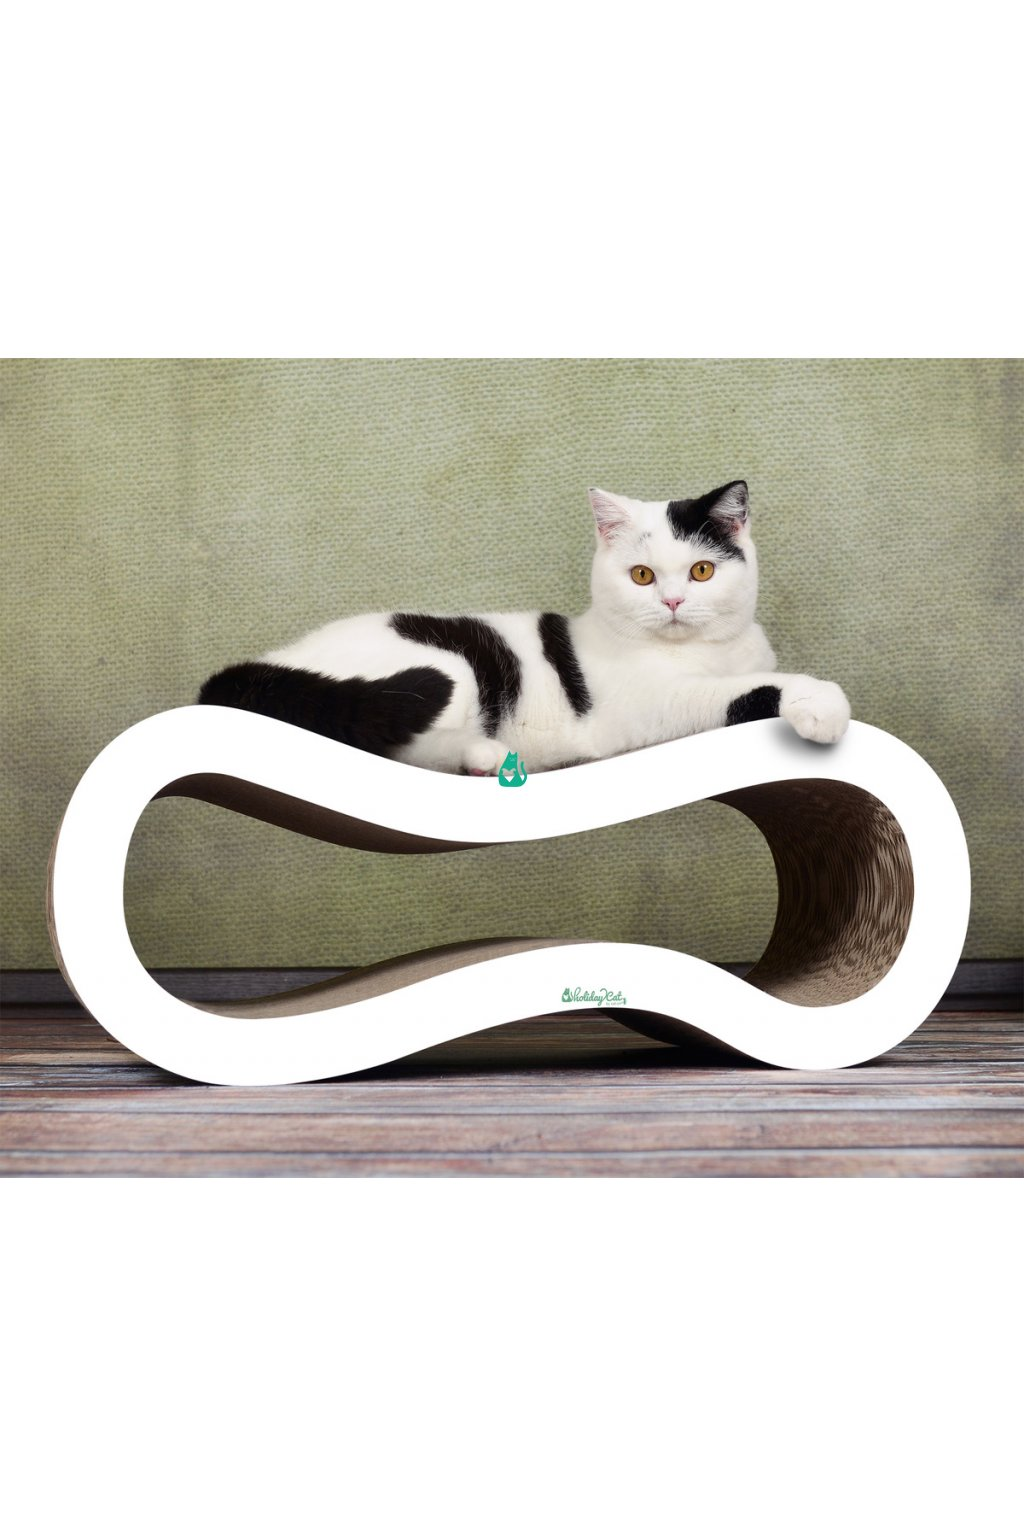 cat on singha m cat scratcher holidaycat white 02